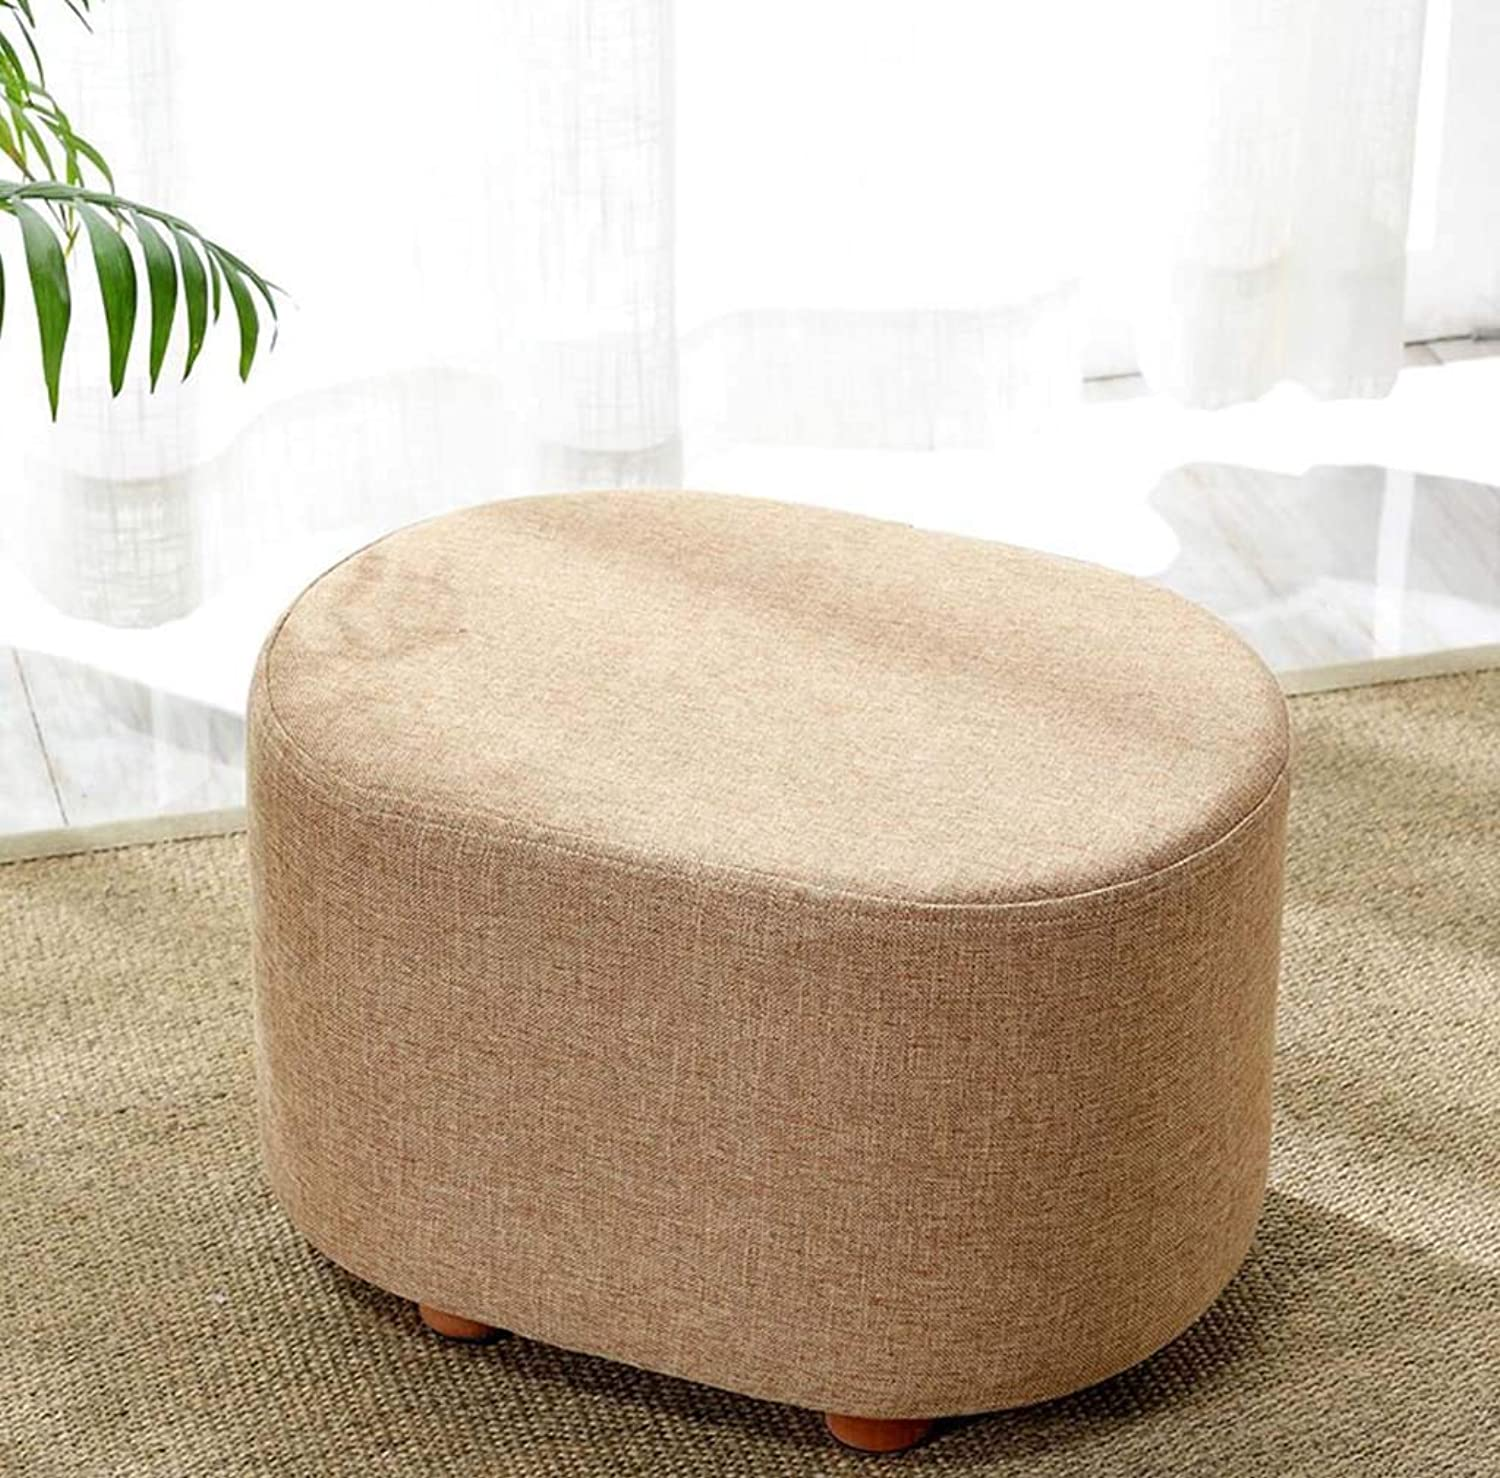 Fabric Solid Wood Living Room Creative Short Stool Bench Stool Change shoes Bench Sofa Stool Ankle,Khaki